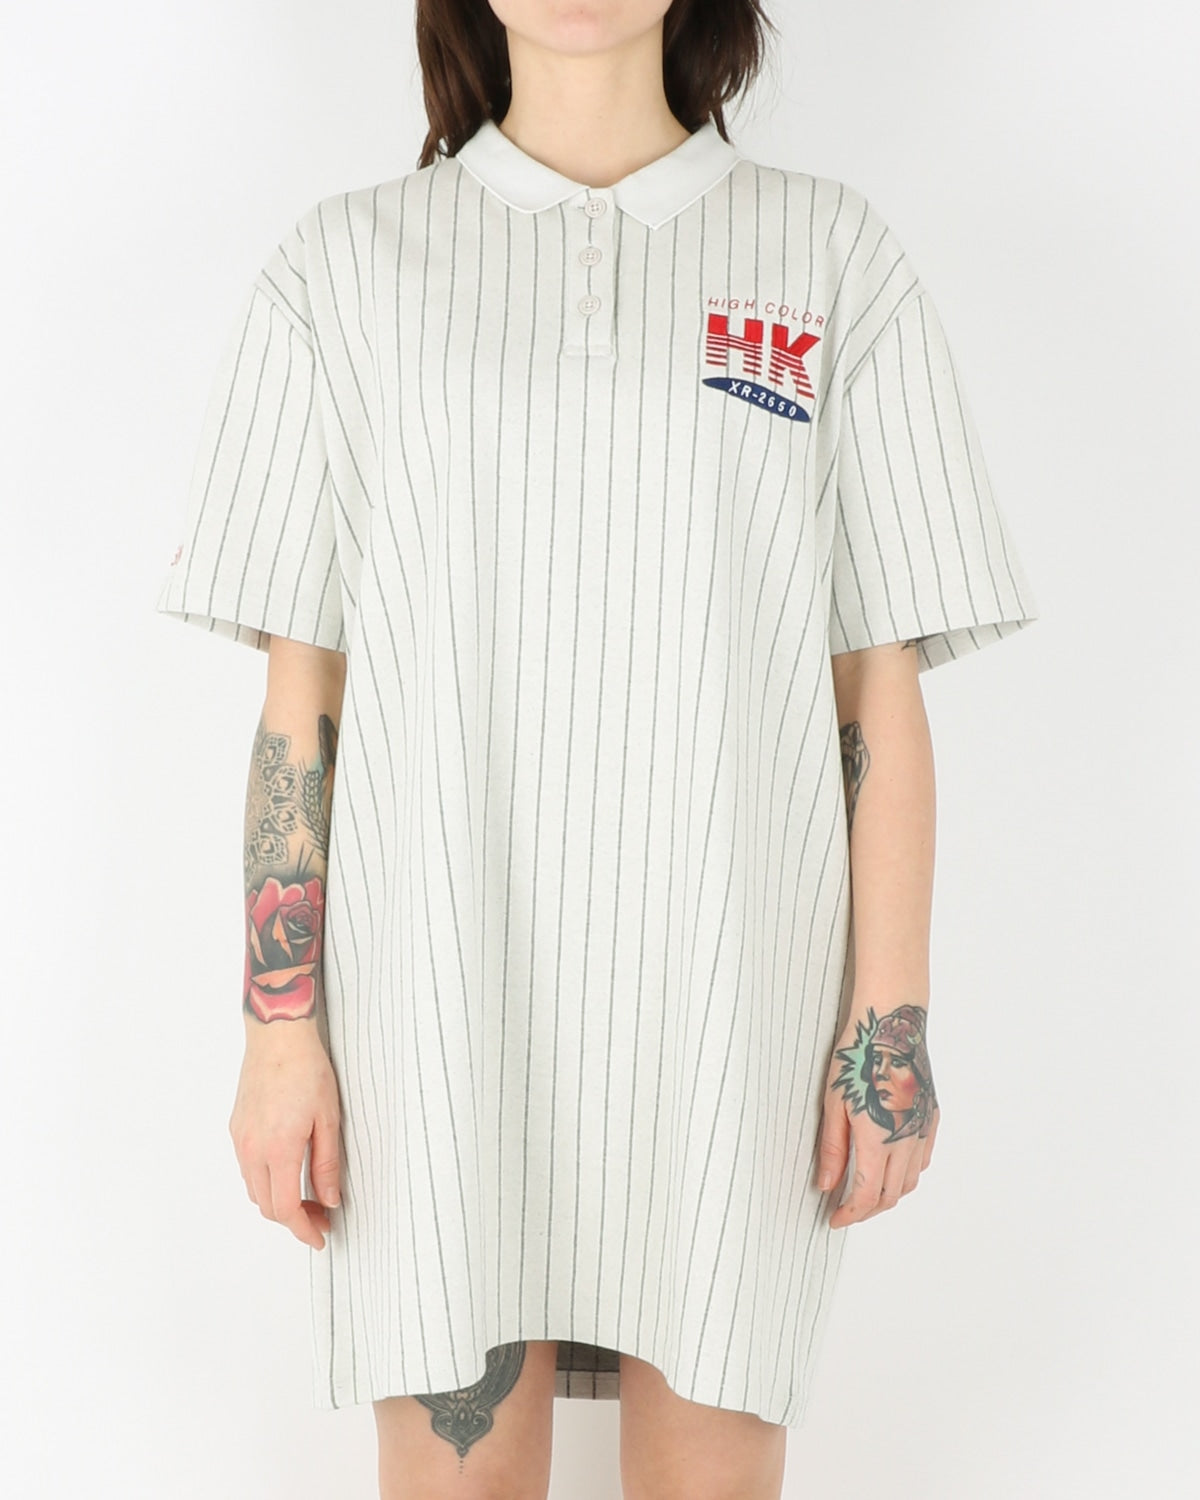 han kjobenhavn_polo dress_pinstripe white_1_3